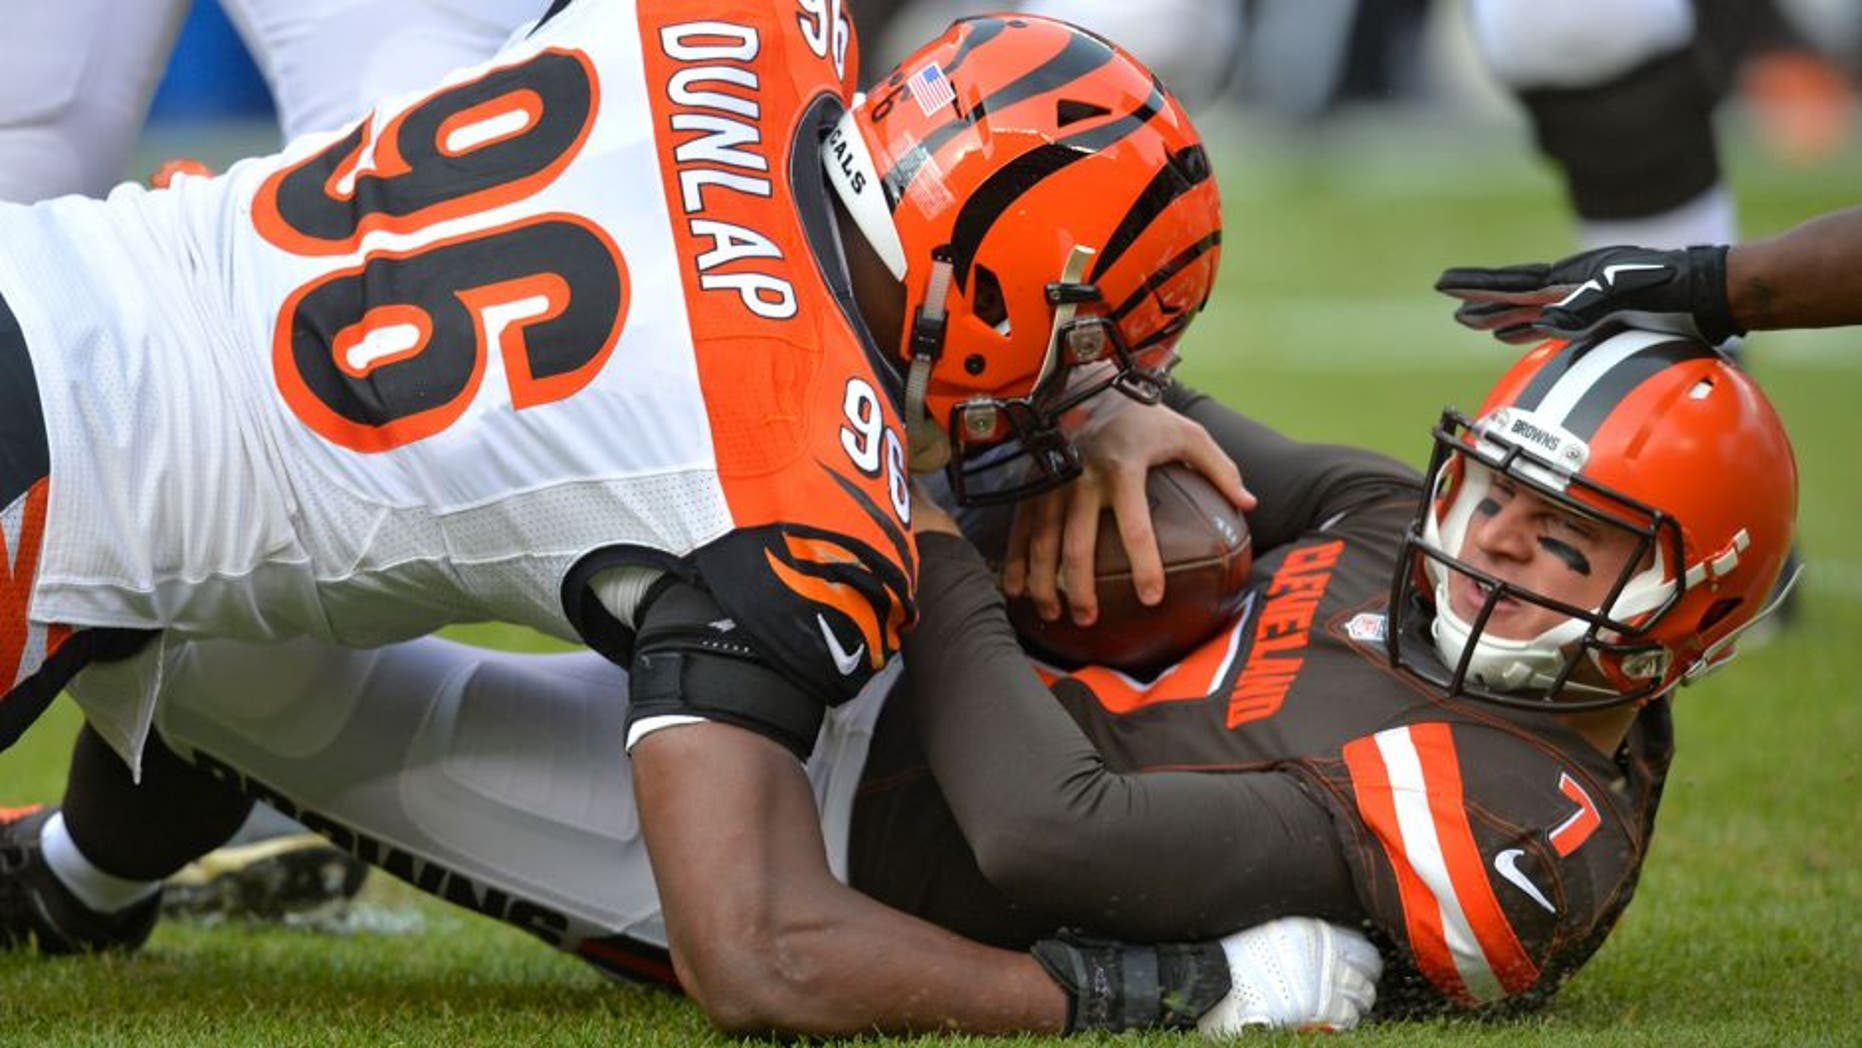 Cleveland Browns quarterback Austin Davis (7) is tackled by Cincinnati Bengals defensive end Carlos Dunlap (96) in the first half of an NFL football game, Sunday, Dec. 6, 2015, in Cleveland. (AP Photo/David Richard)